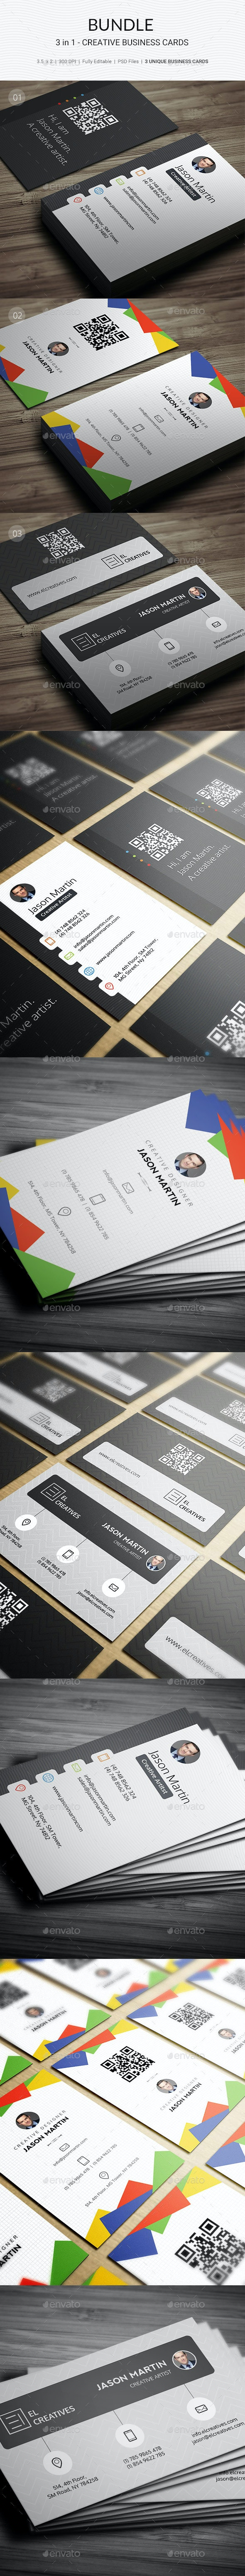 Bundle - 3 in 1 - Prime Business Cards - 179 - Creative Business Cards